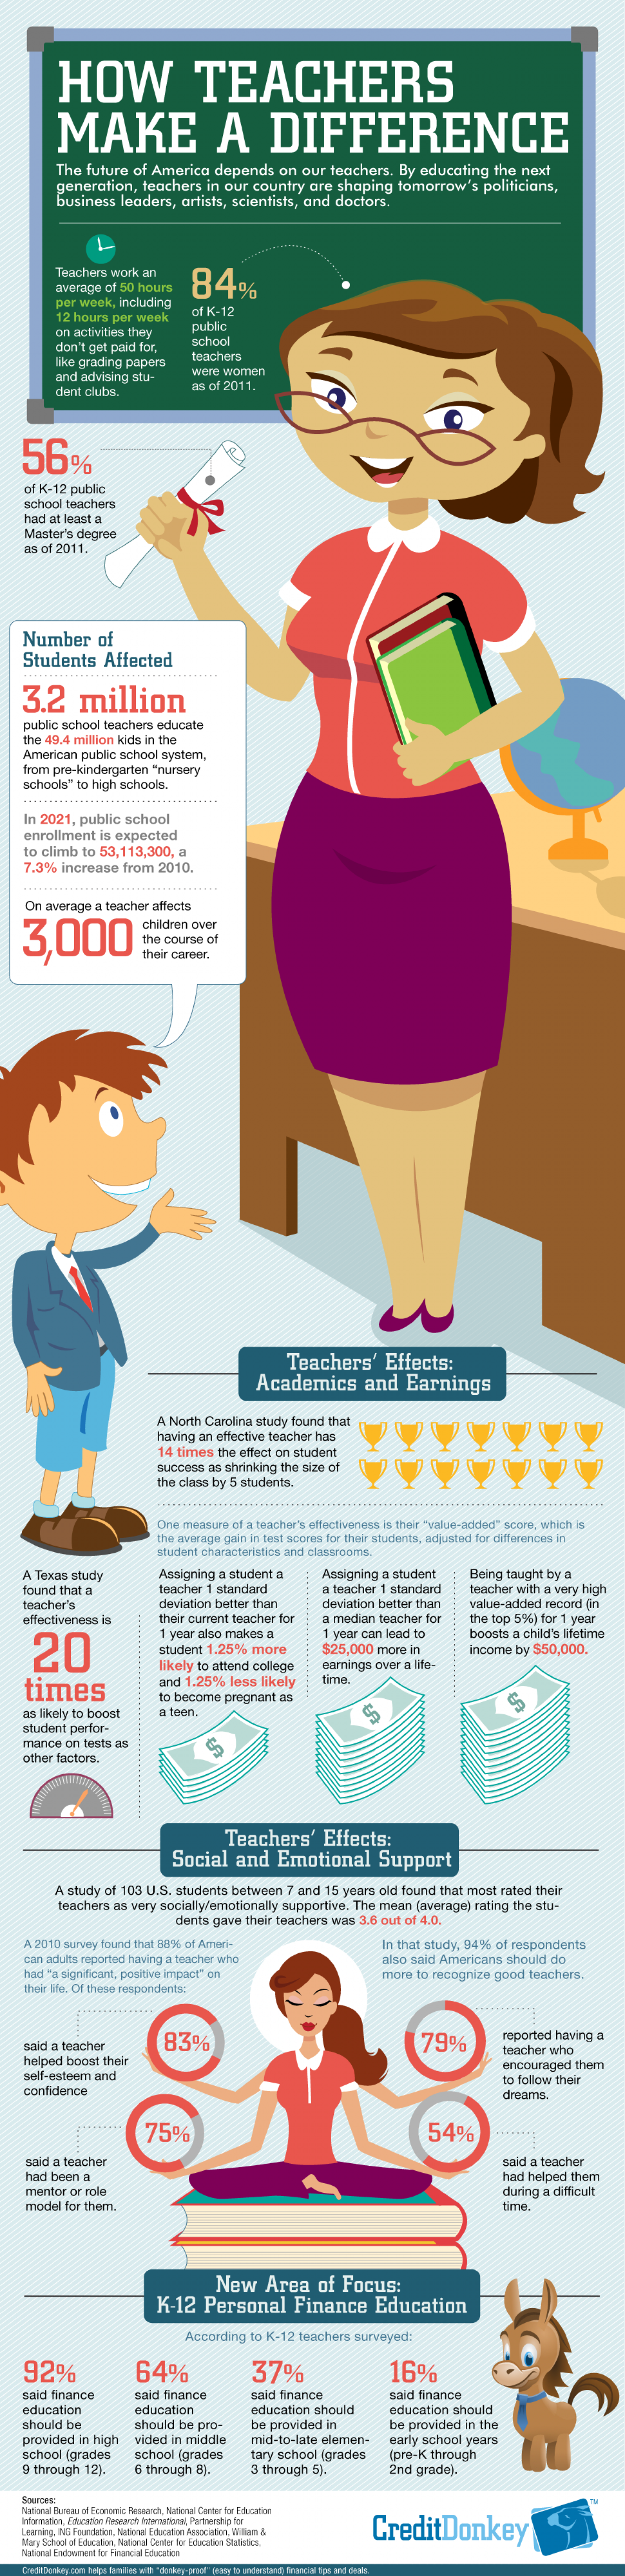 How Teachers Make a Difference Infographic